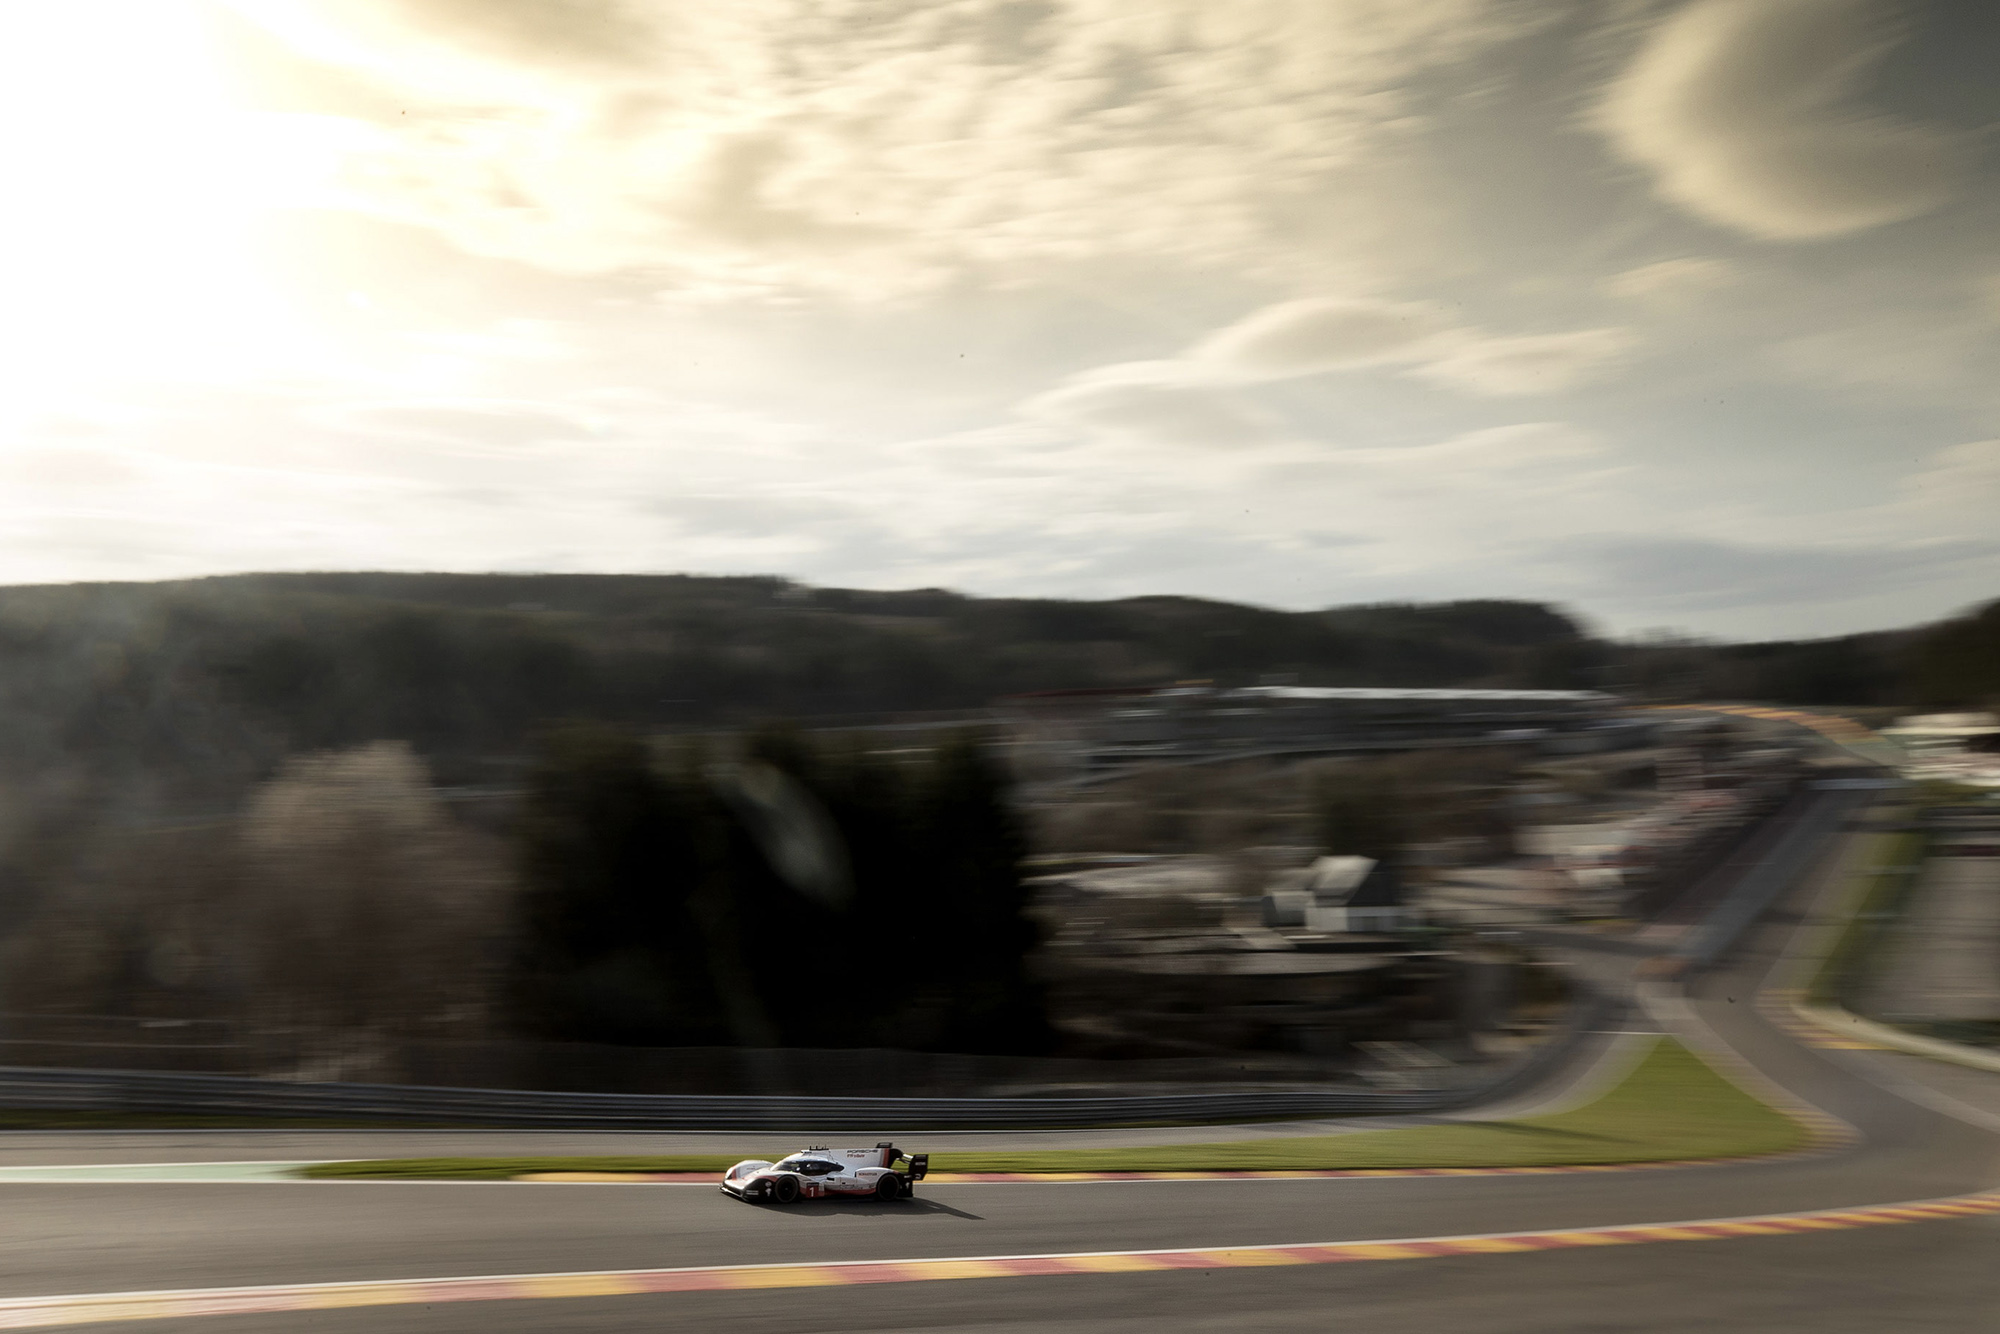 Porsche 919 Hybrid Evo drives up the hill from Eau Rouge at Spa